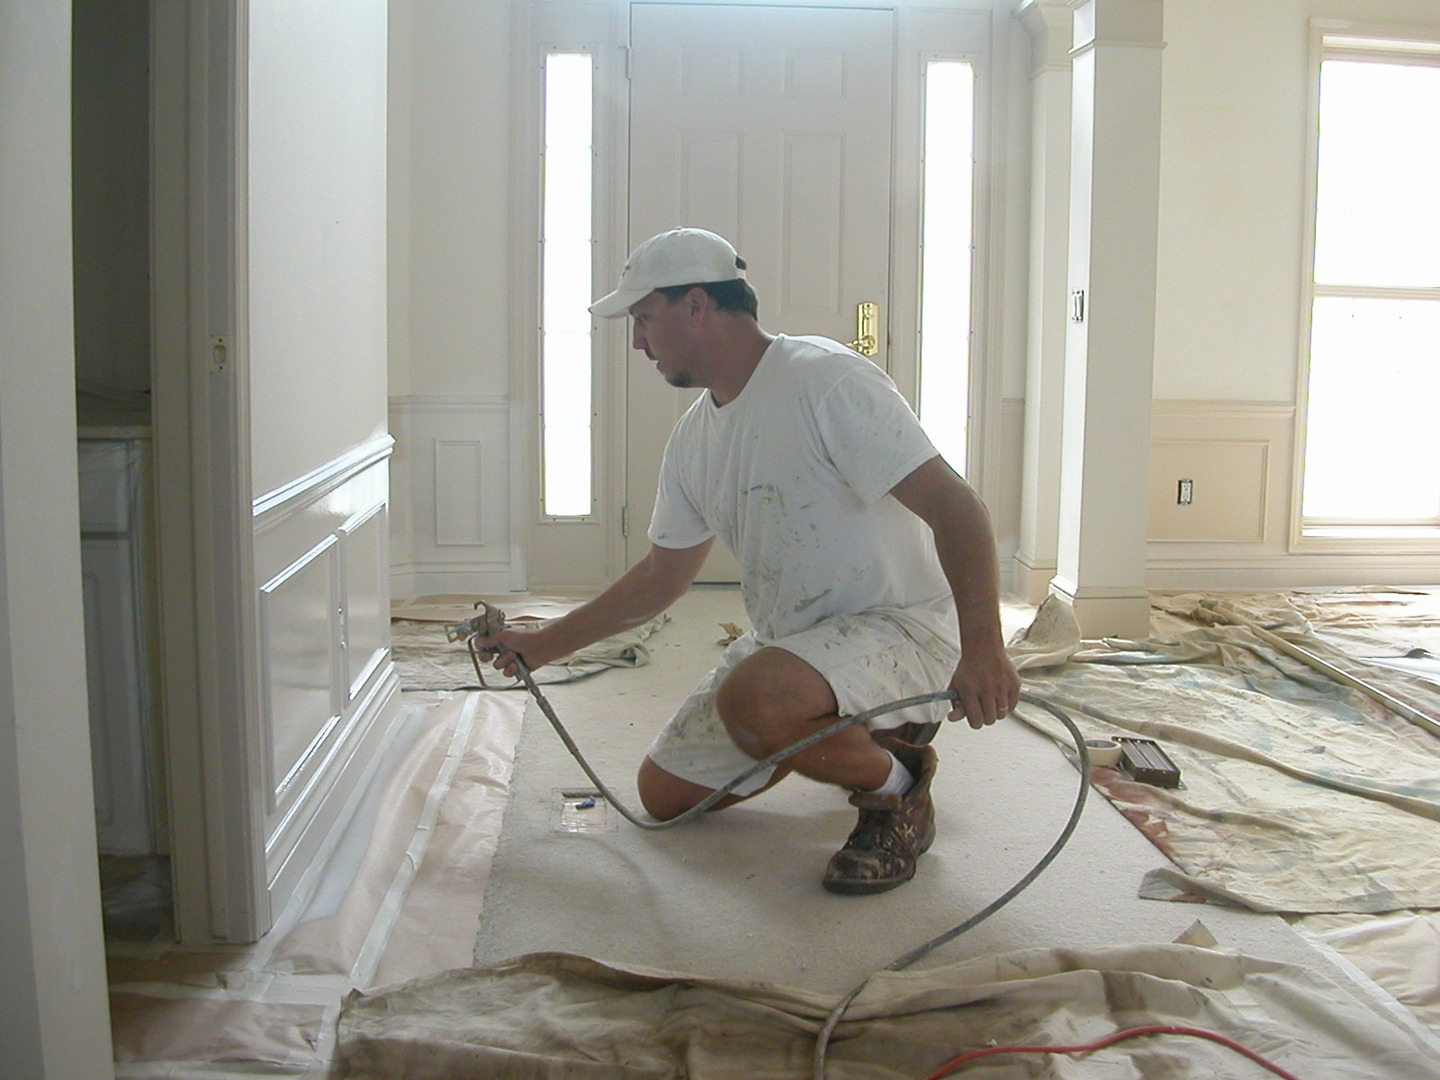 Michigan oakland county wixom - Interior House Painter Wixom Michigan Exterior Condo Painter Wixom Michigan Rotten Trim Wood Siding Replacement